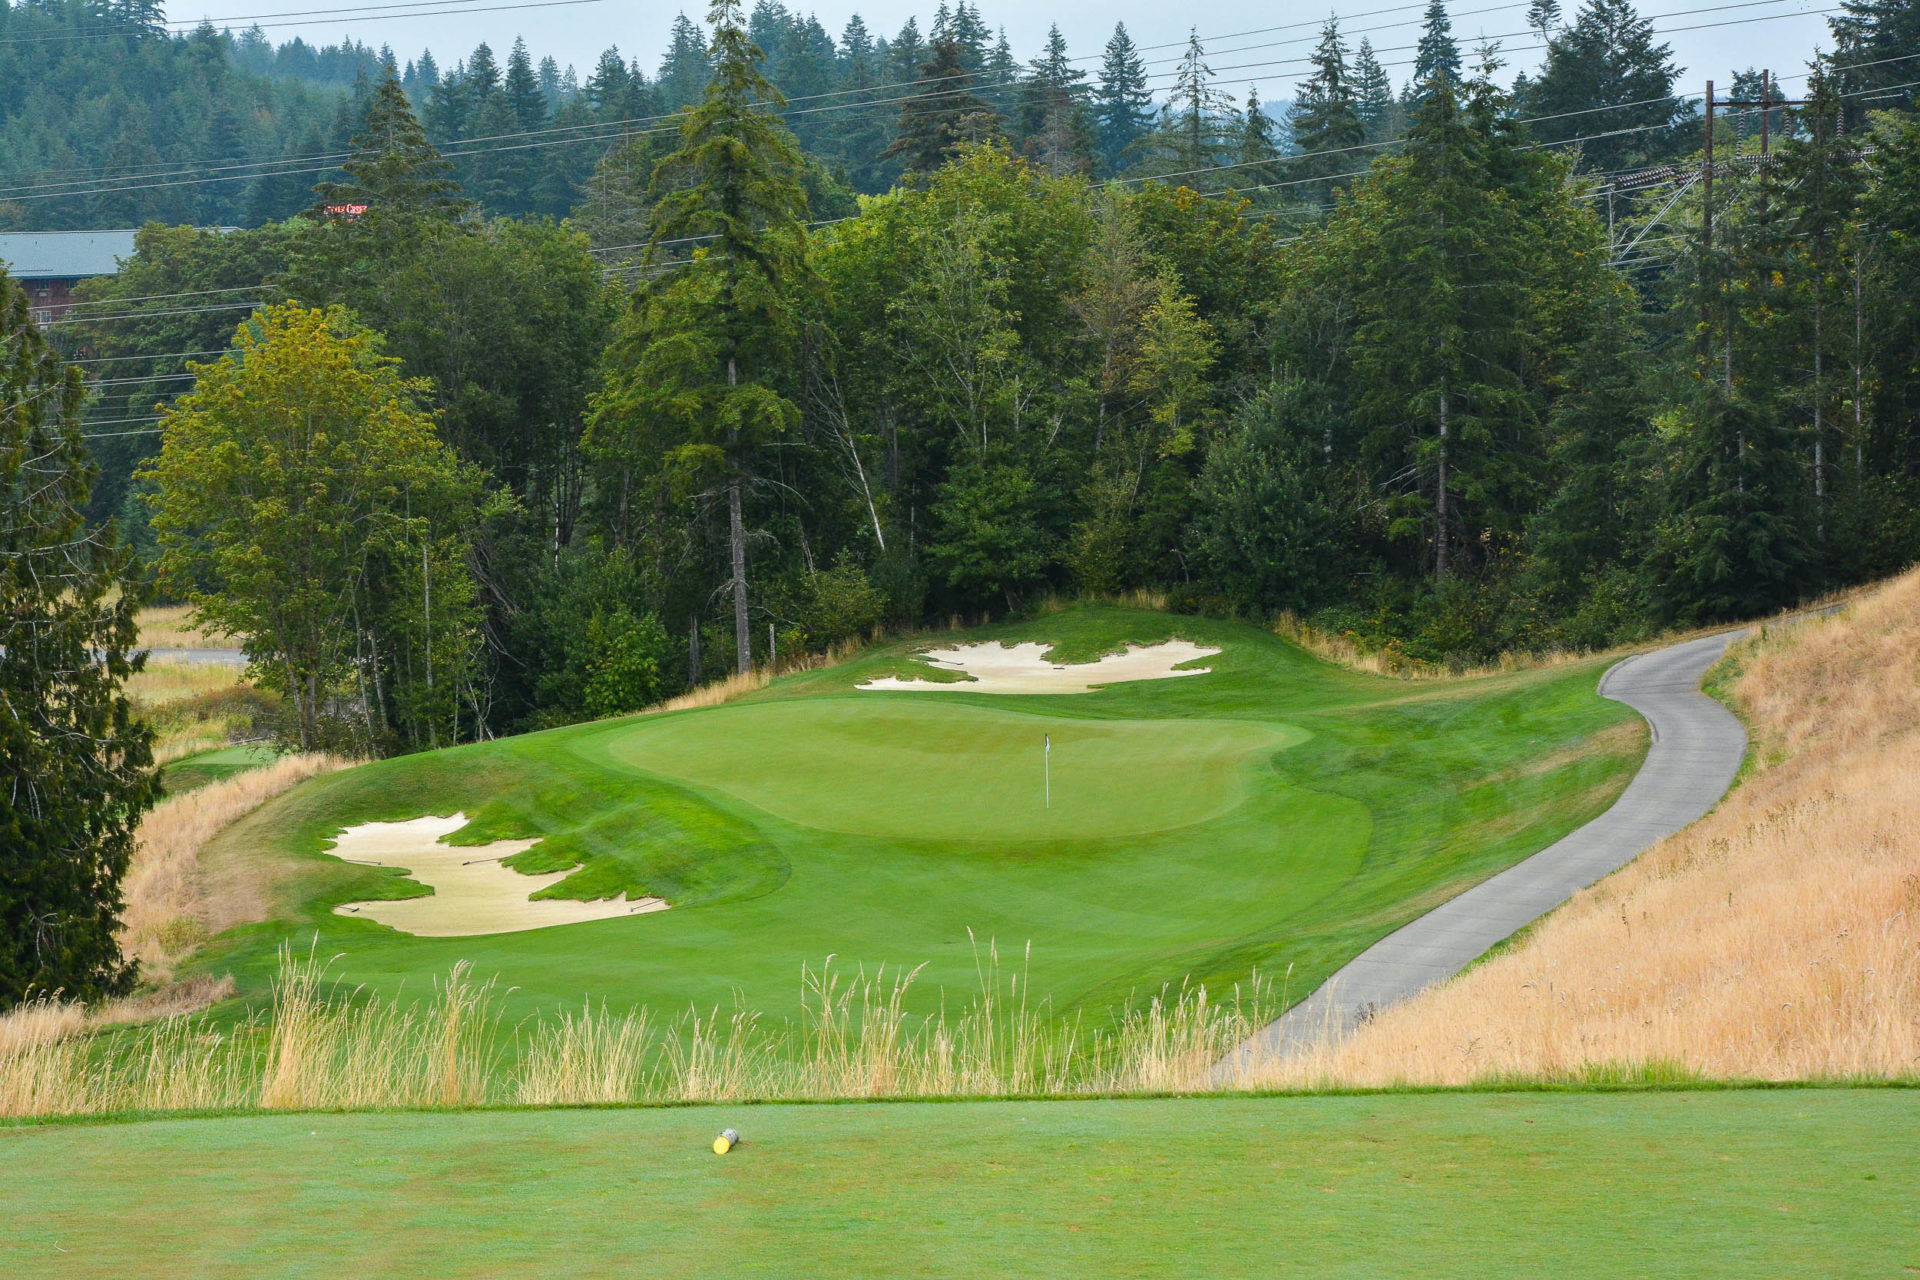 The downhill par 3, 3rd. This can stretch out to over 280 yards.